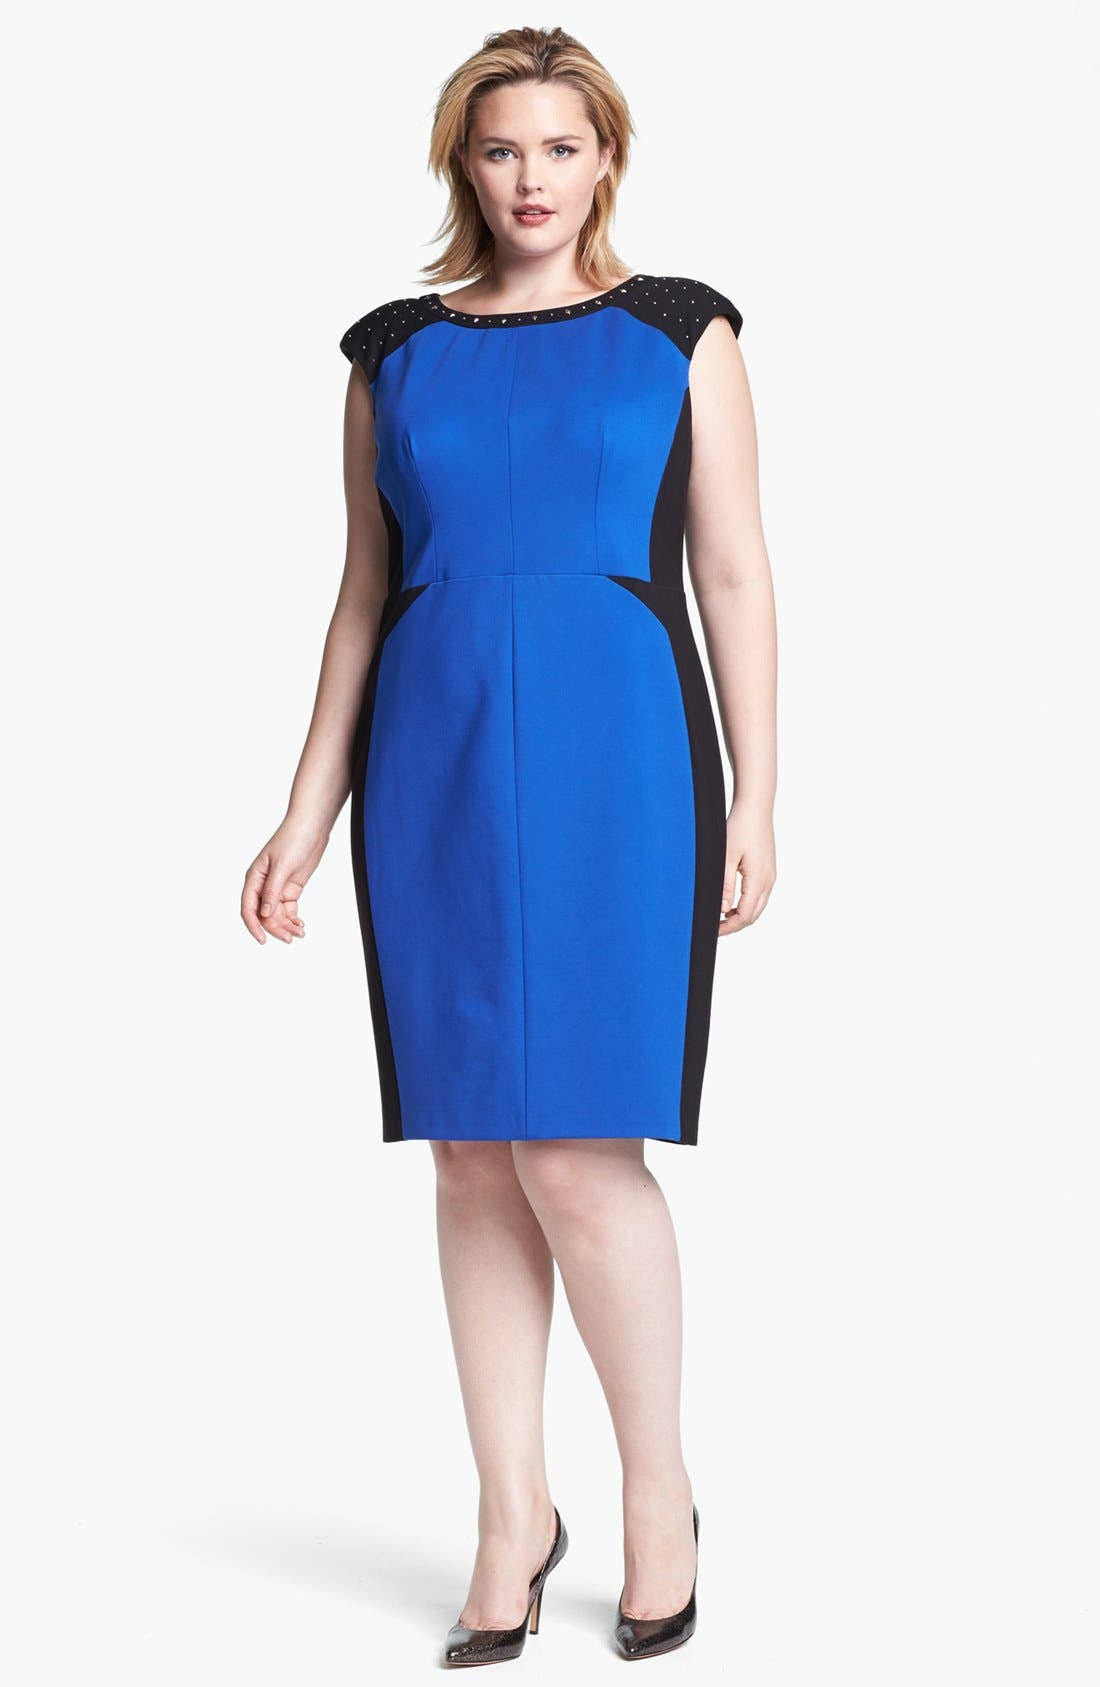 Alternate Image 1 Selected - ABS Luxury Collection Studded Colorblock Sheath Dress (Plus Size)